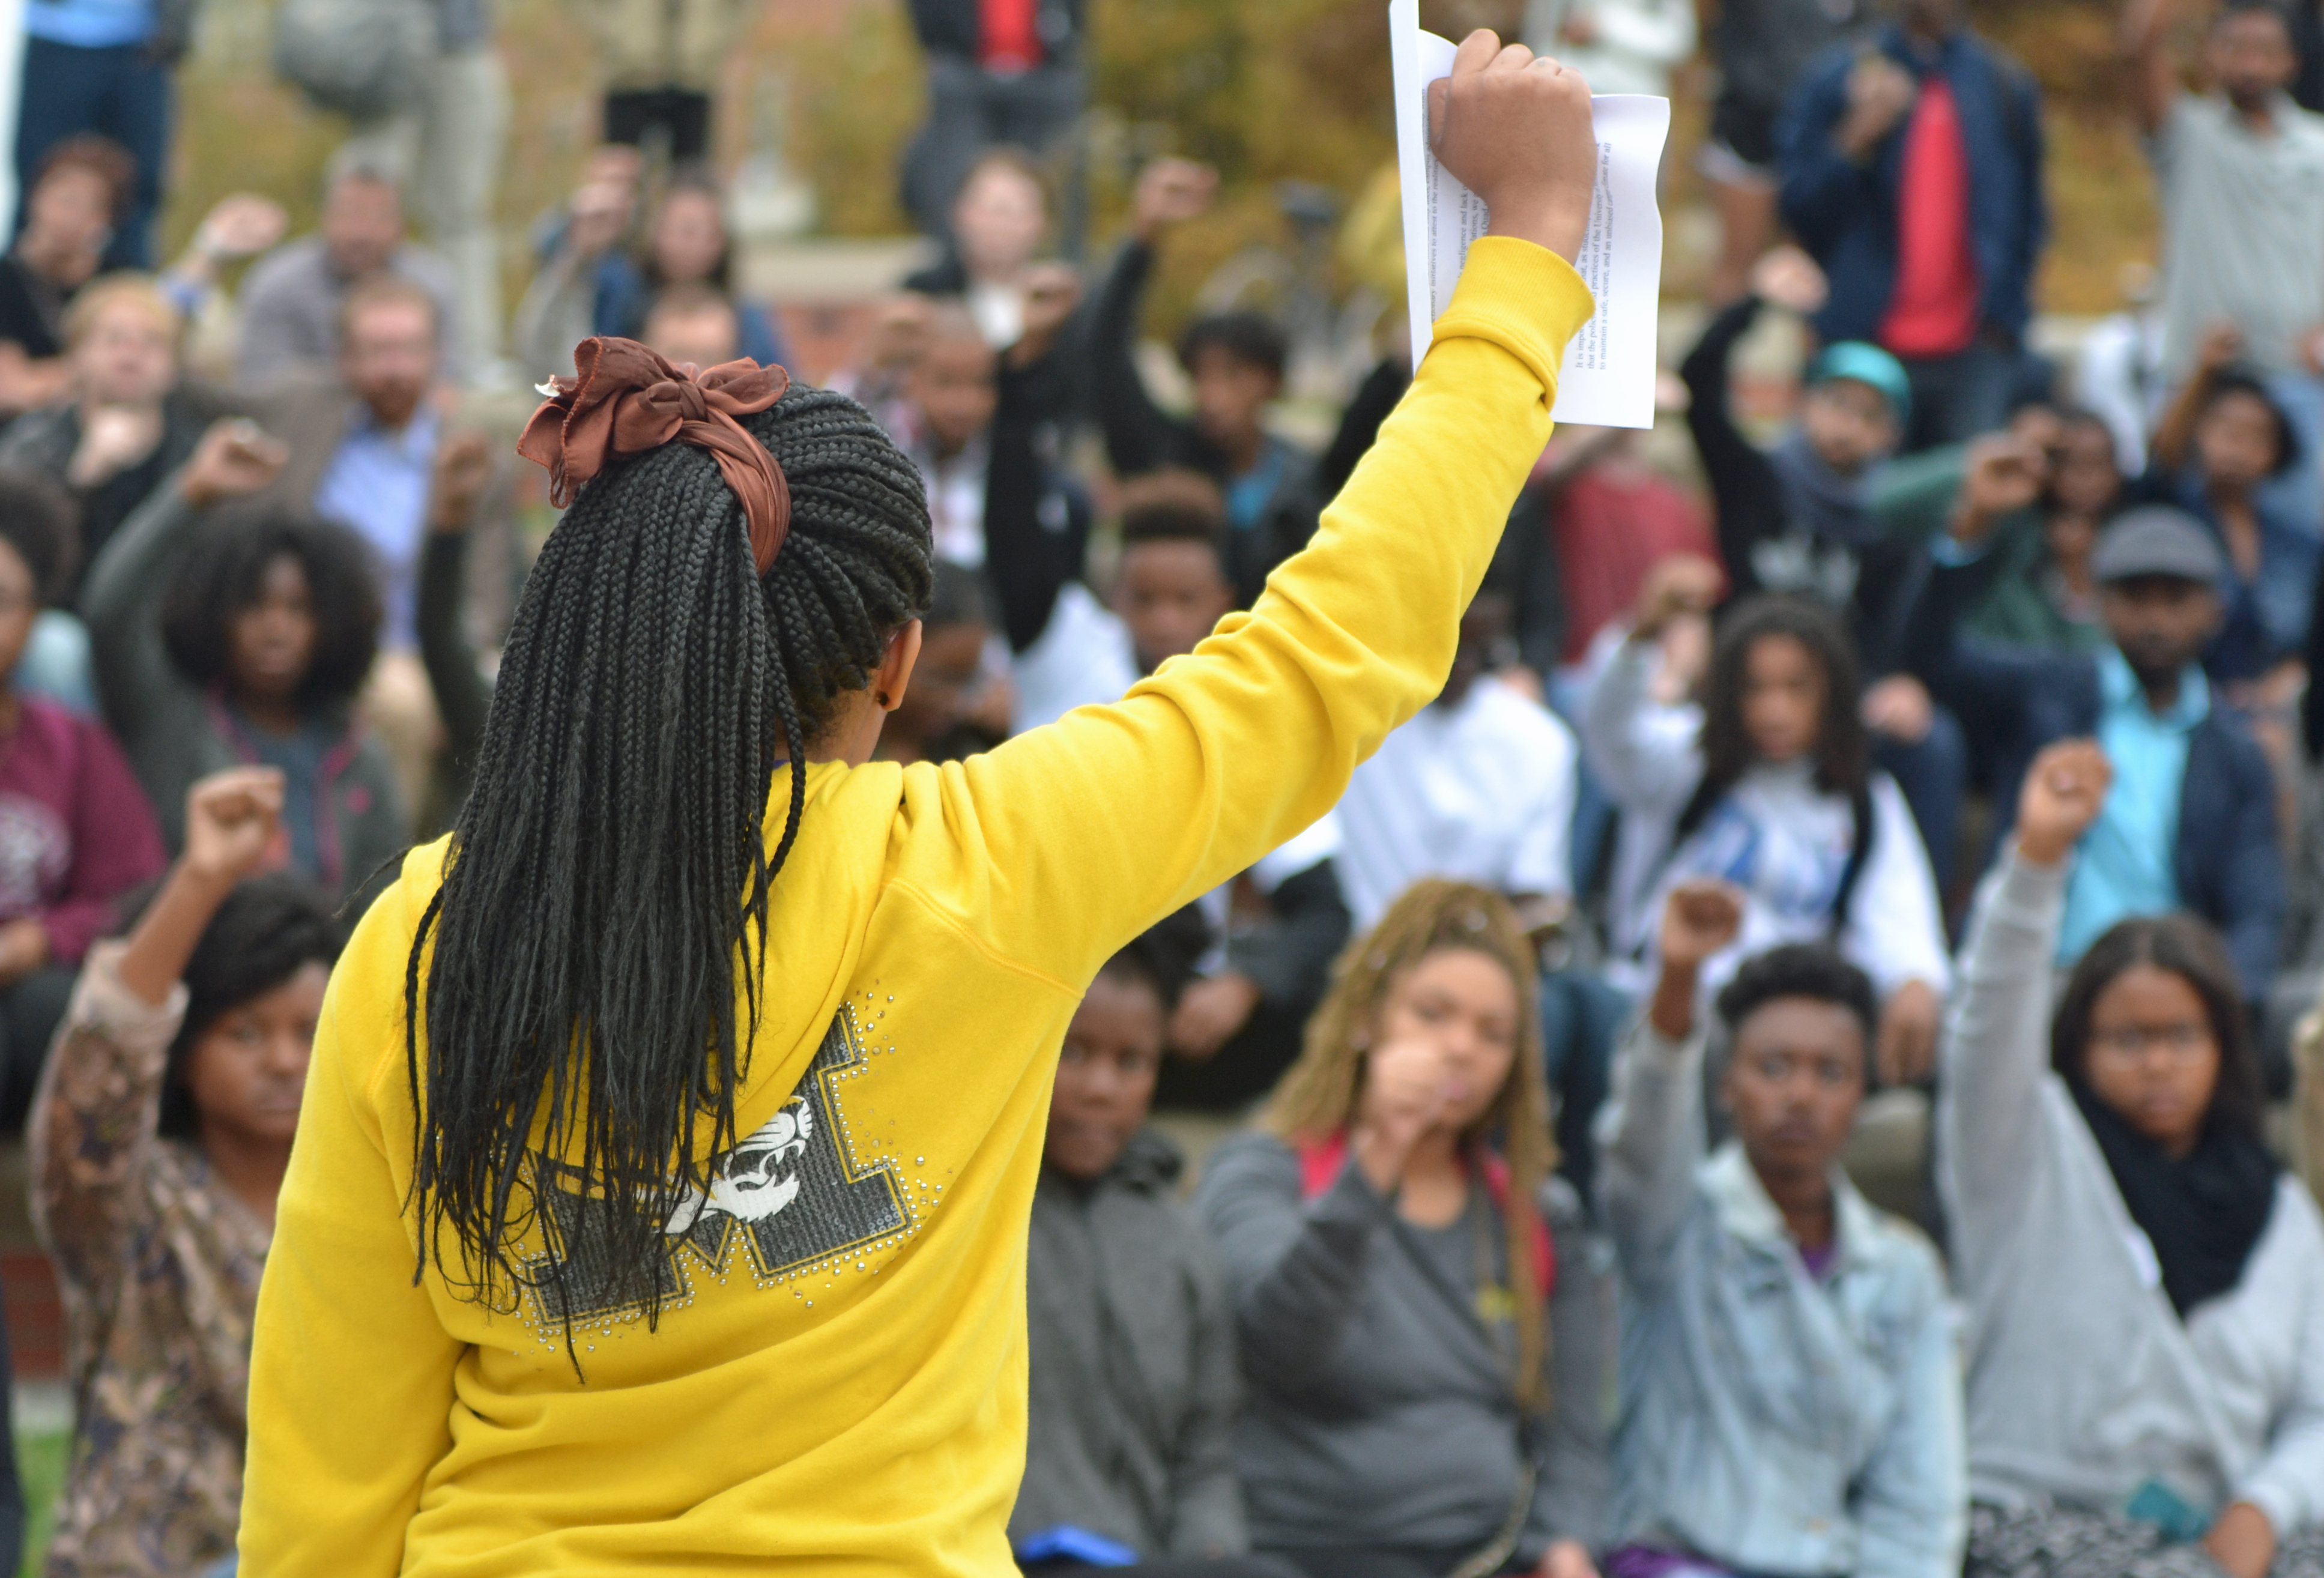 racial tensions escalate at u of missouri and yale